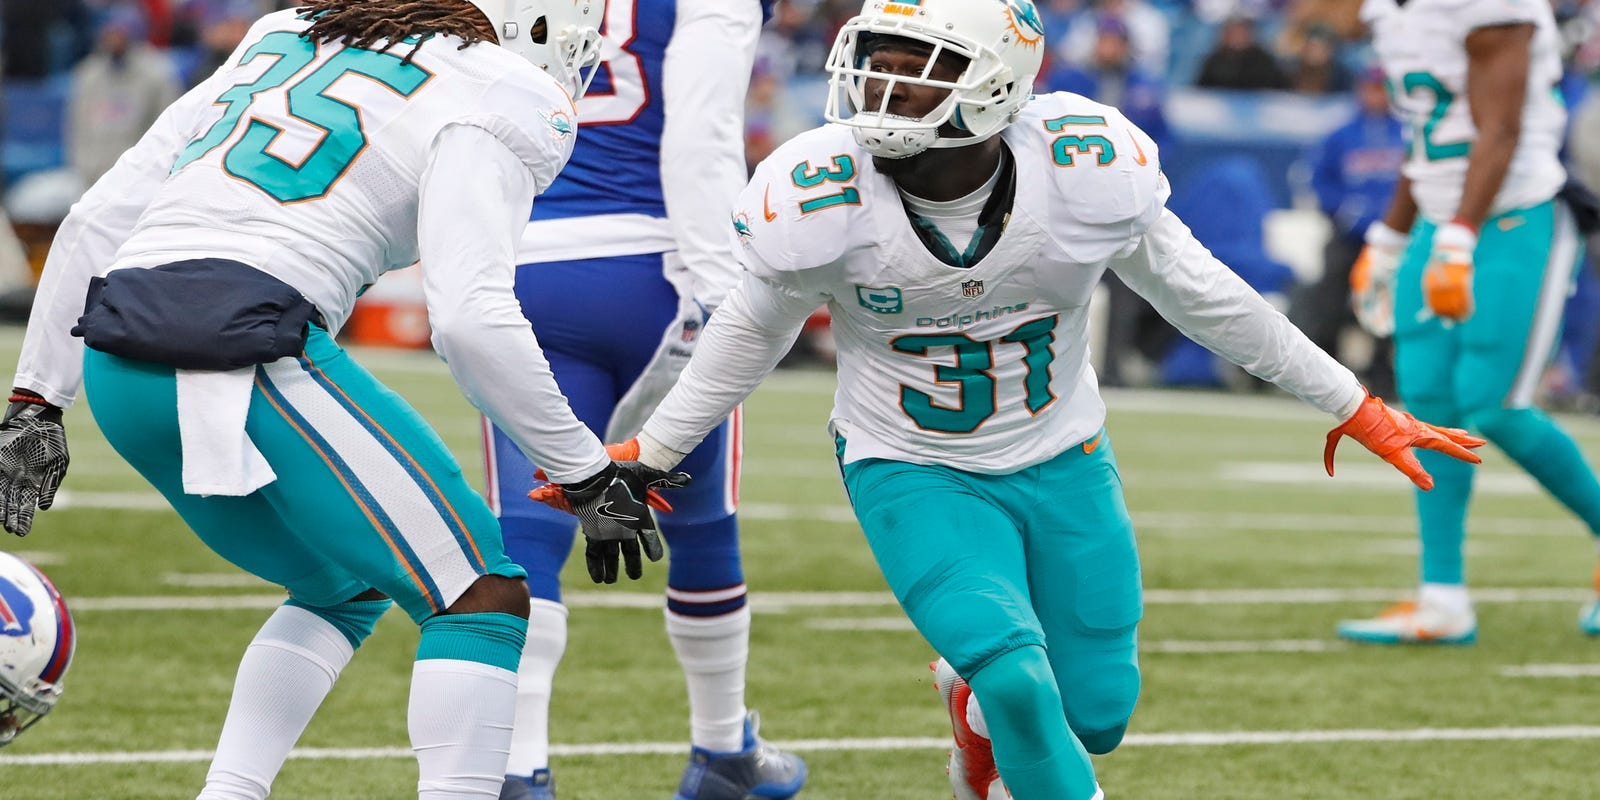 Dolphins earn 1st playoff berth since 2008 with Denver loss